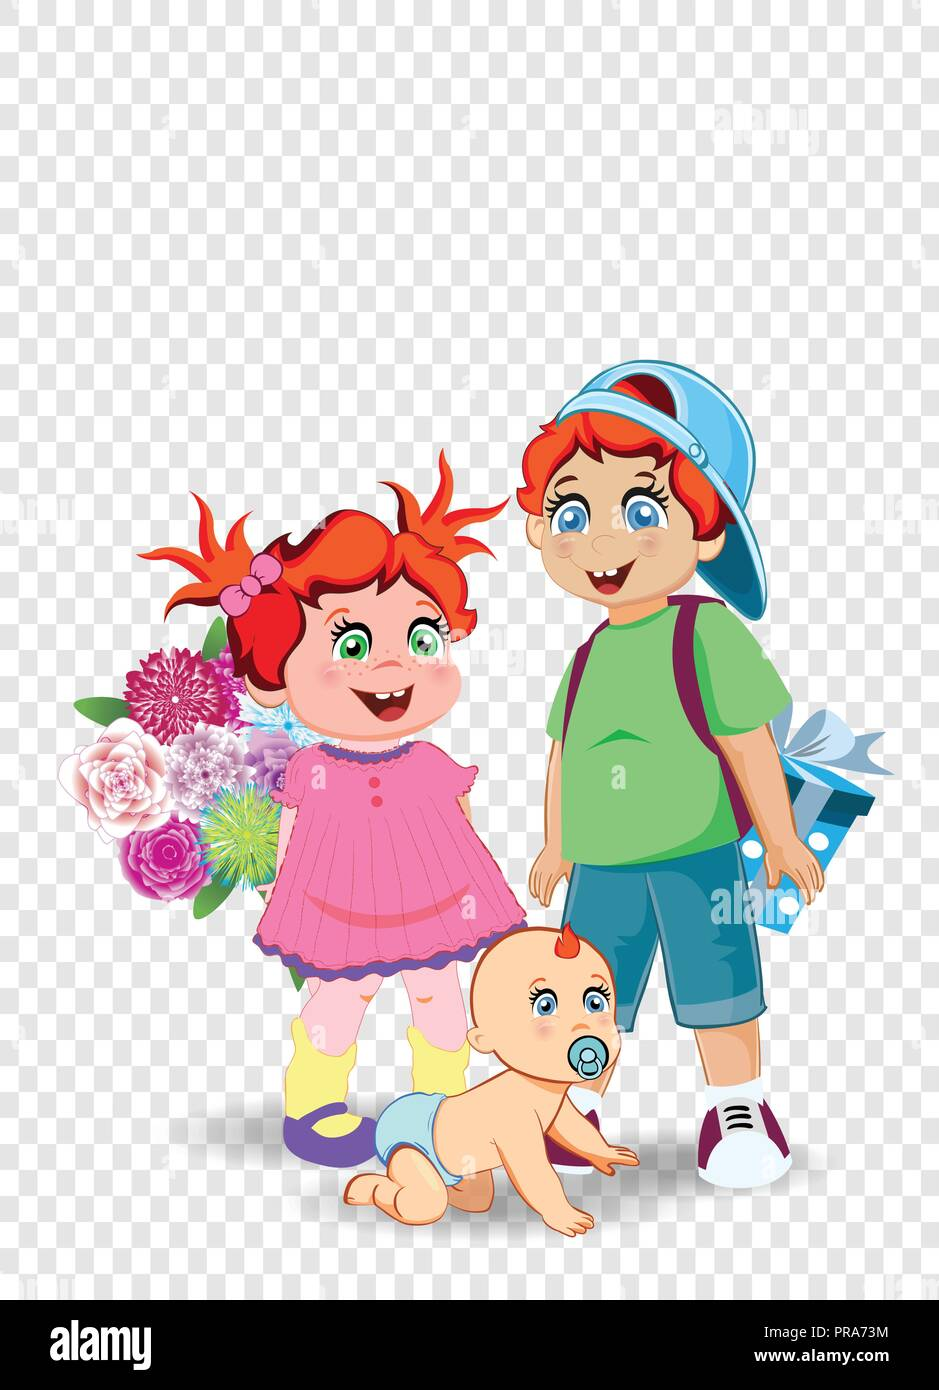 Cartoon Illustration Of Cute Little Kids With Flowers And Presents